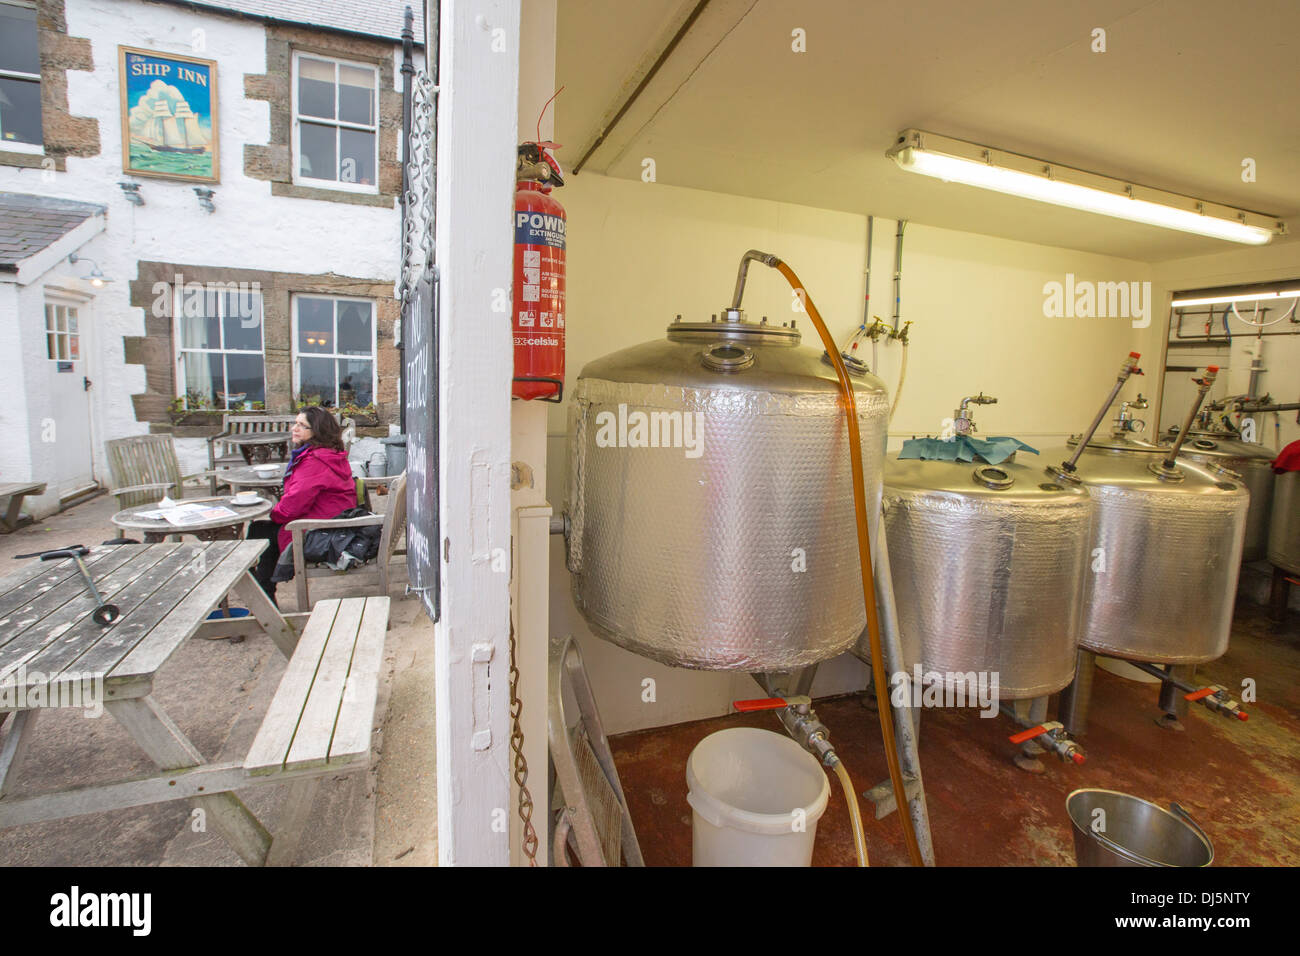 The micro brewery attached to the ship In at Low Newton by the Sea, Northumberland, Uk, that brews all their own beer. - Stock Image